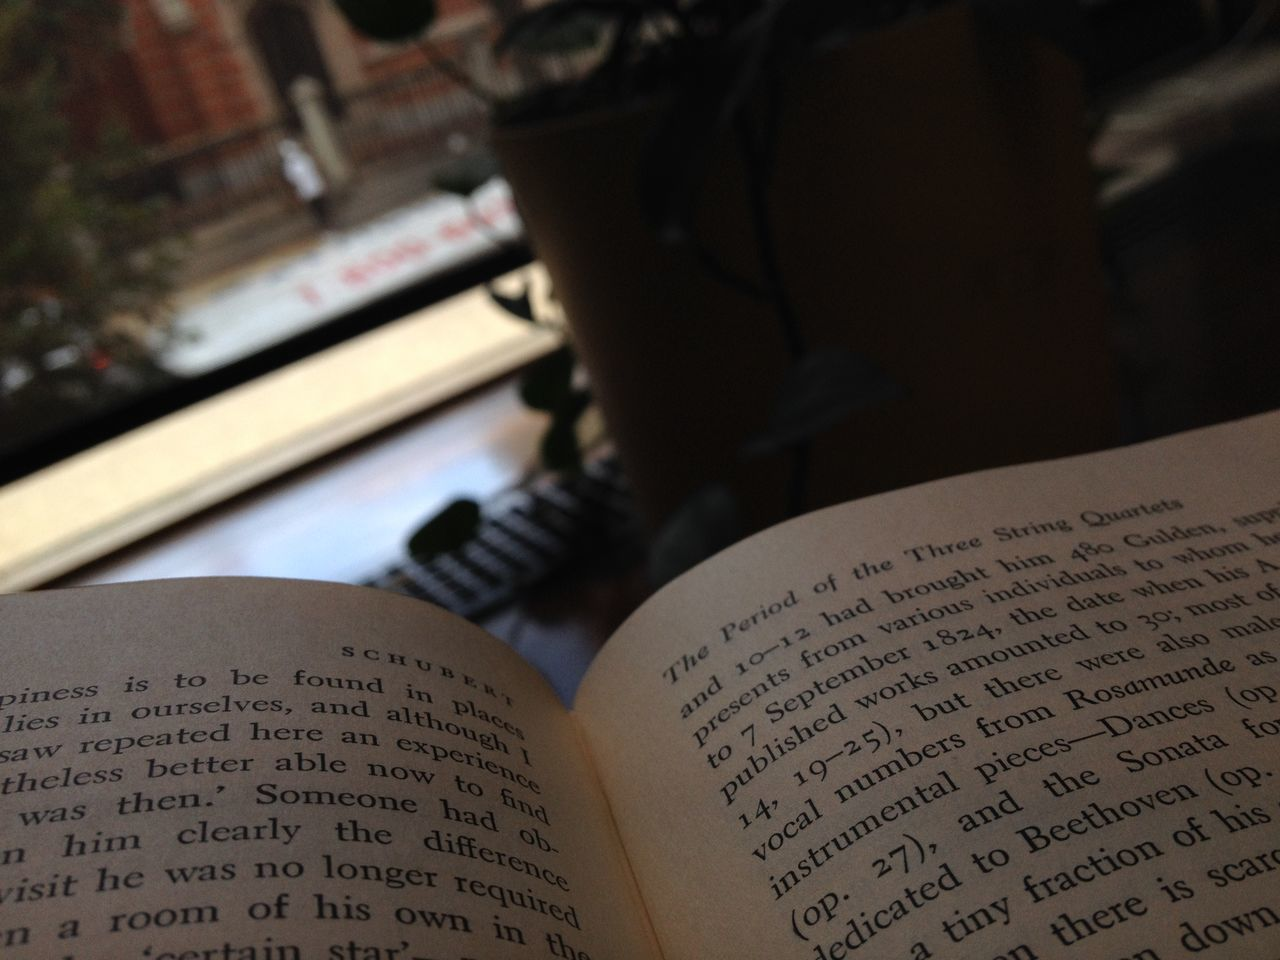 text, western script, book, spirituality, communication, indoors, page, close-up, education, religion, focus on foreground, hope, no people, day